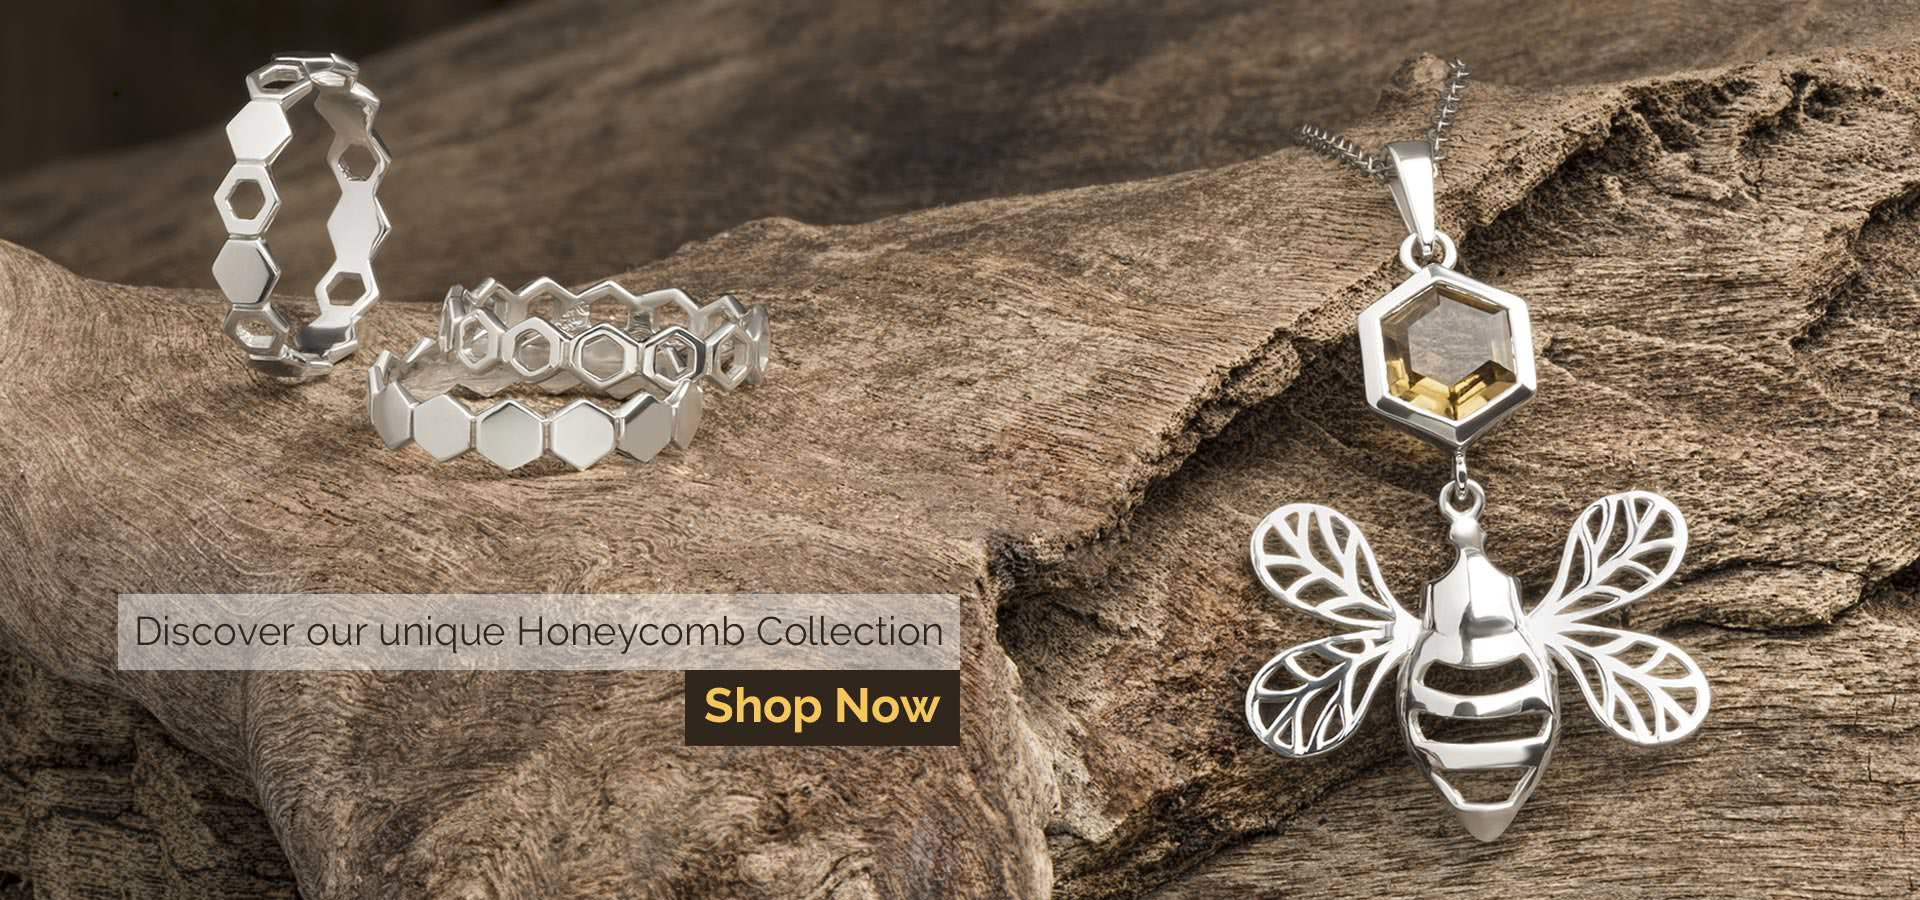 Honeycomb jewellery on wooden background